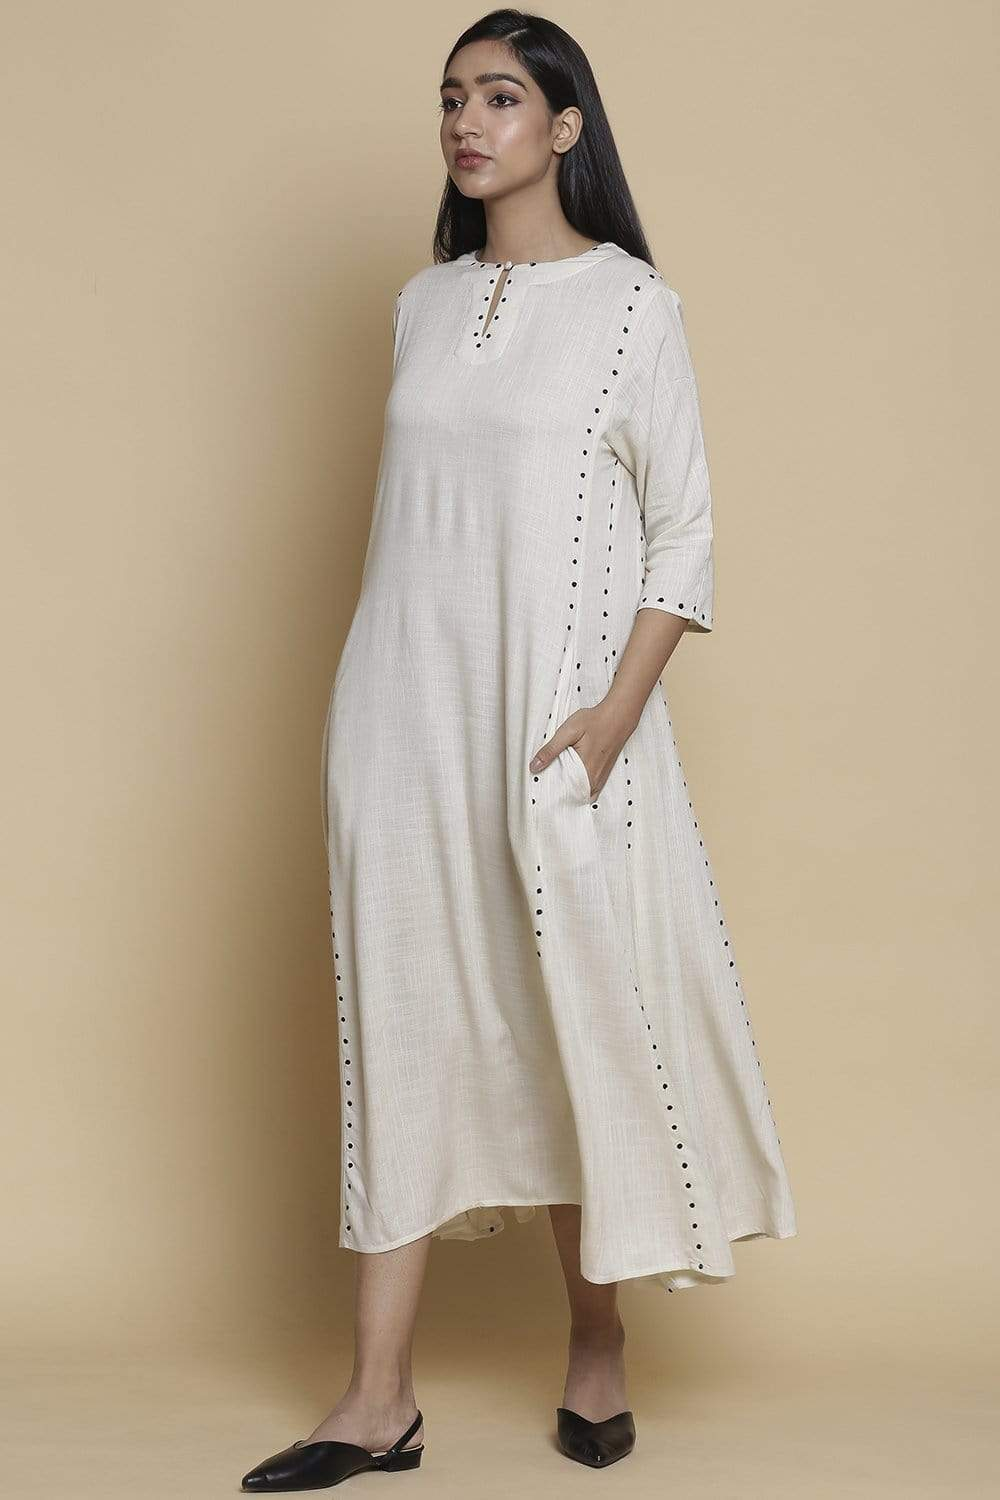 Abraham & Thakore Dresses Ivory long kali dress with all over embroidery